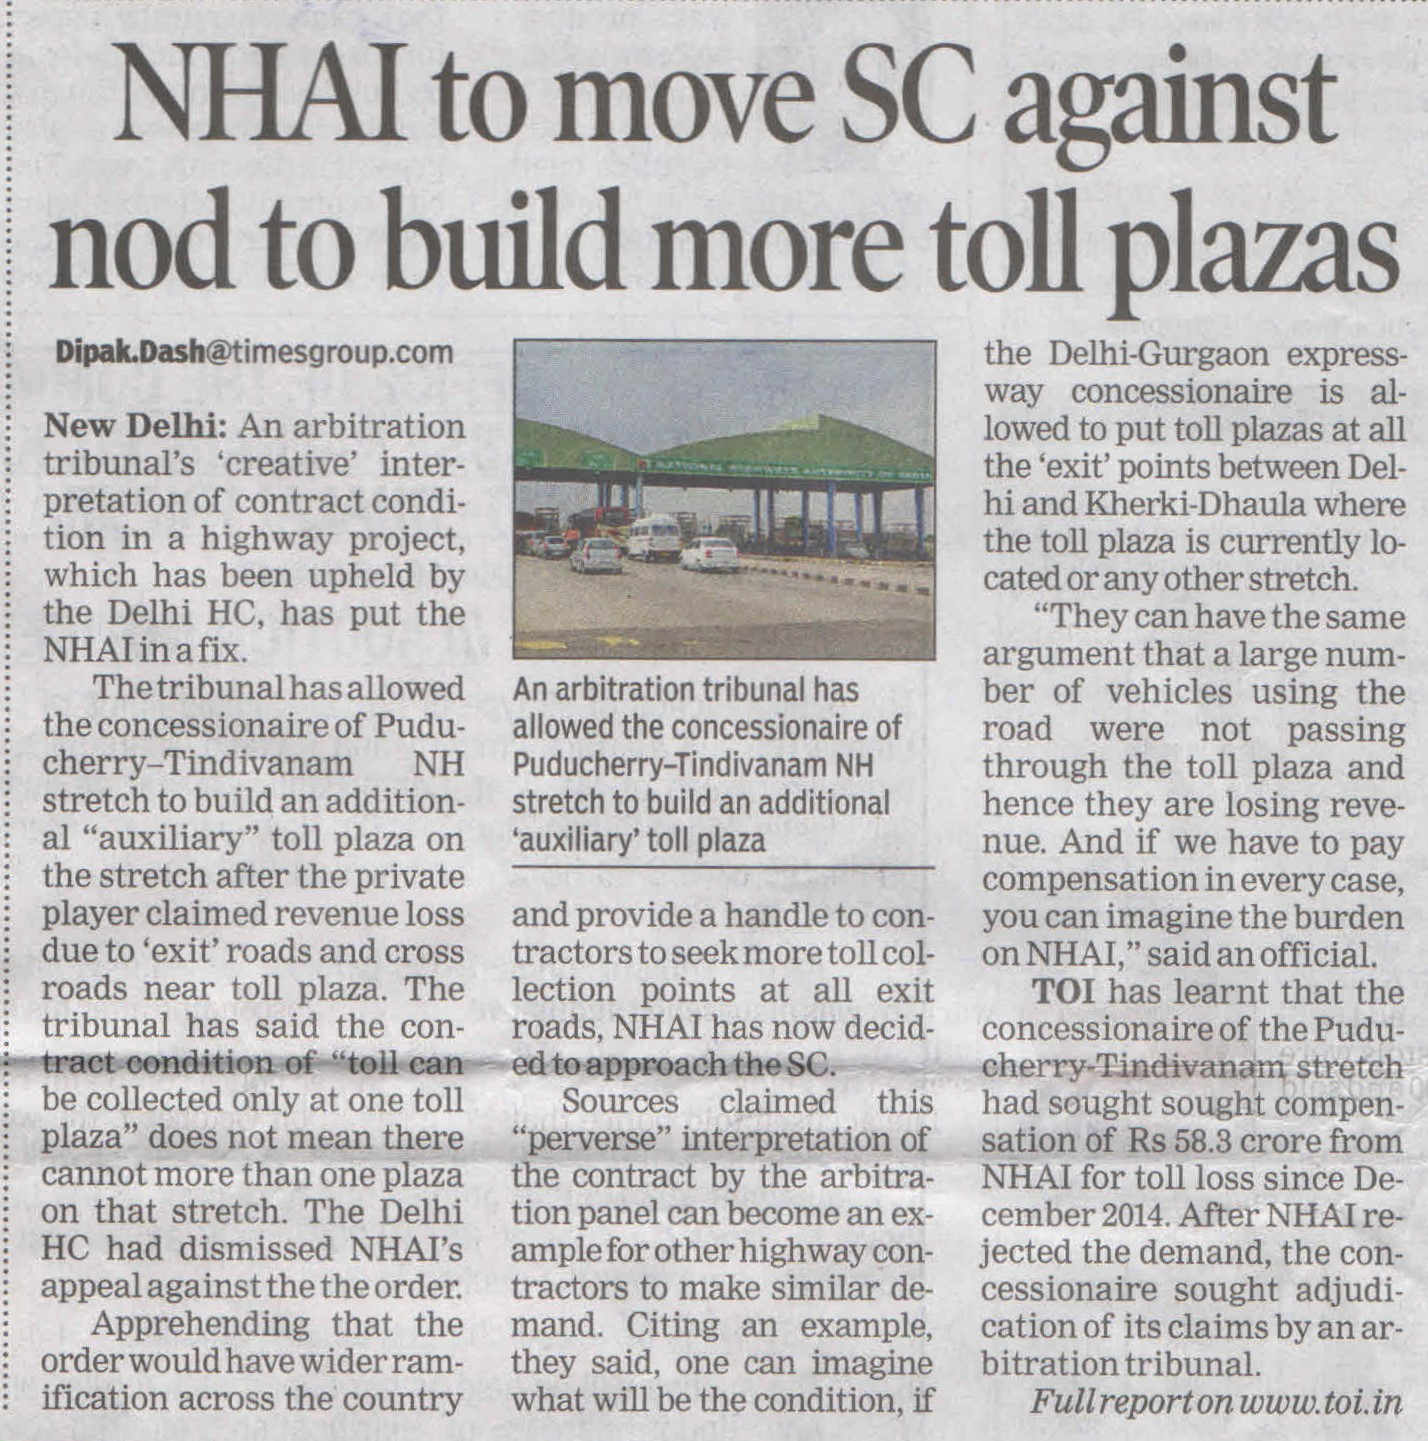 NHAI to move SC against not to build more toll plazas